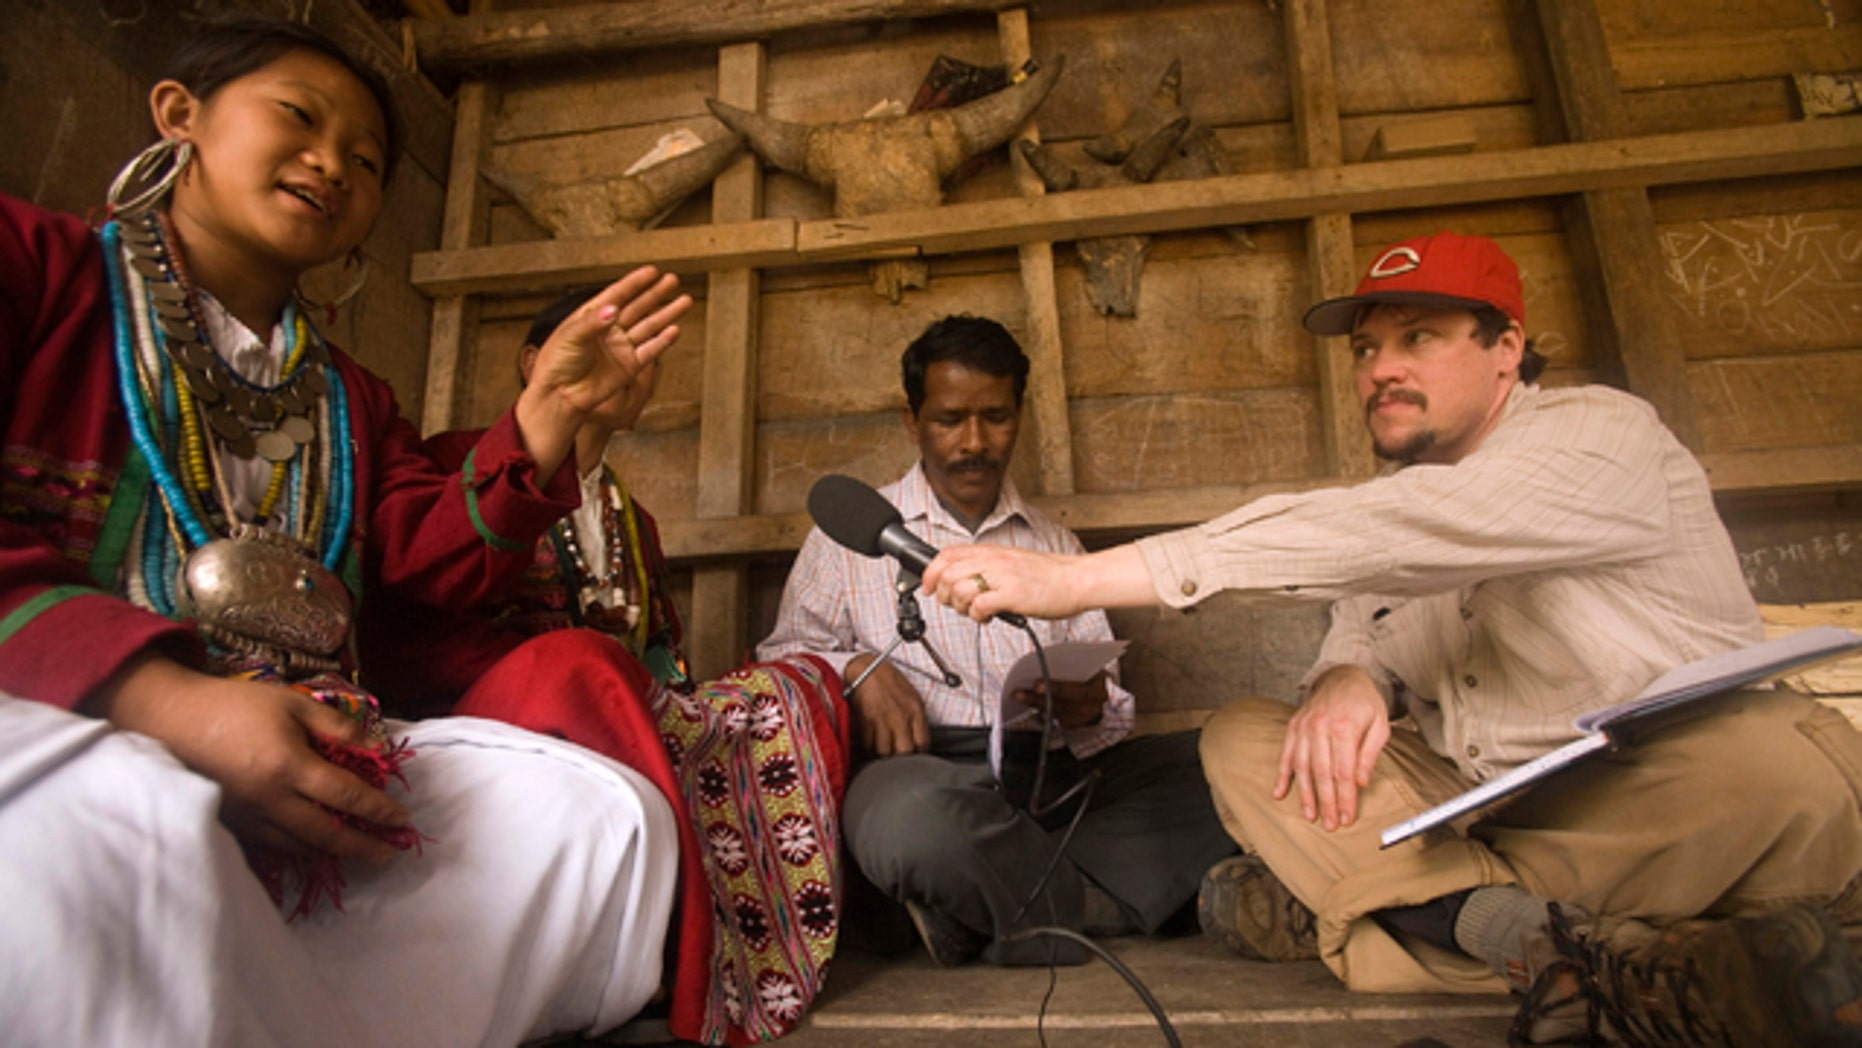 Kachim, a speaker of the hidden language Koro, talks to National Geographic Fellow Gregory Anderson. Anderson and a team made the first known recordings of Koro, an endangered language that is new to science.